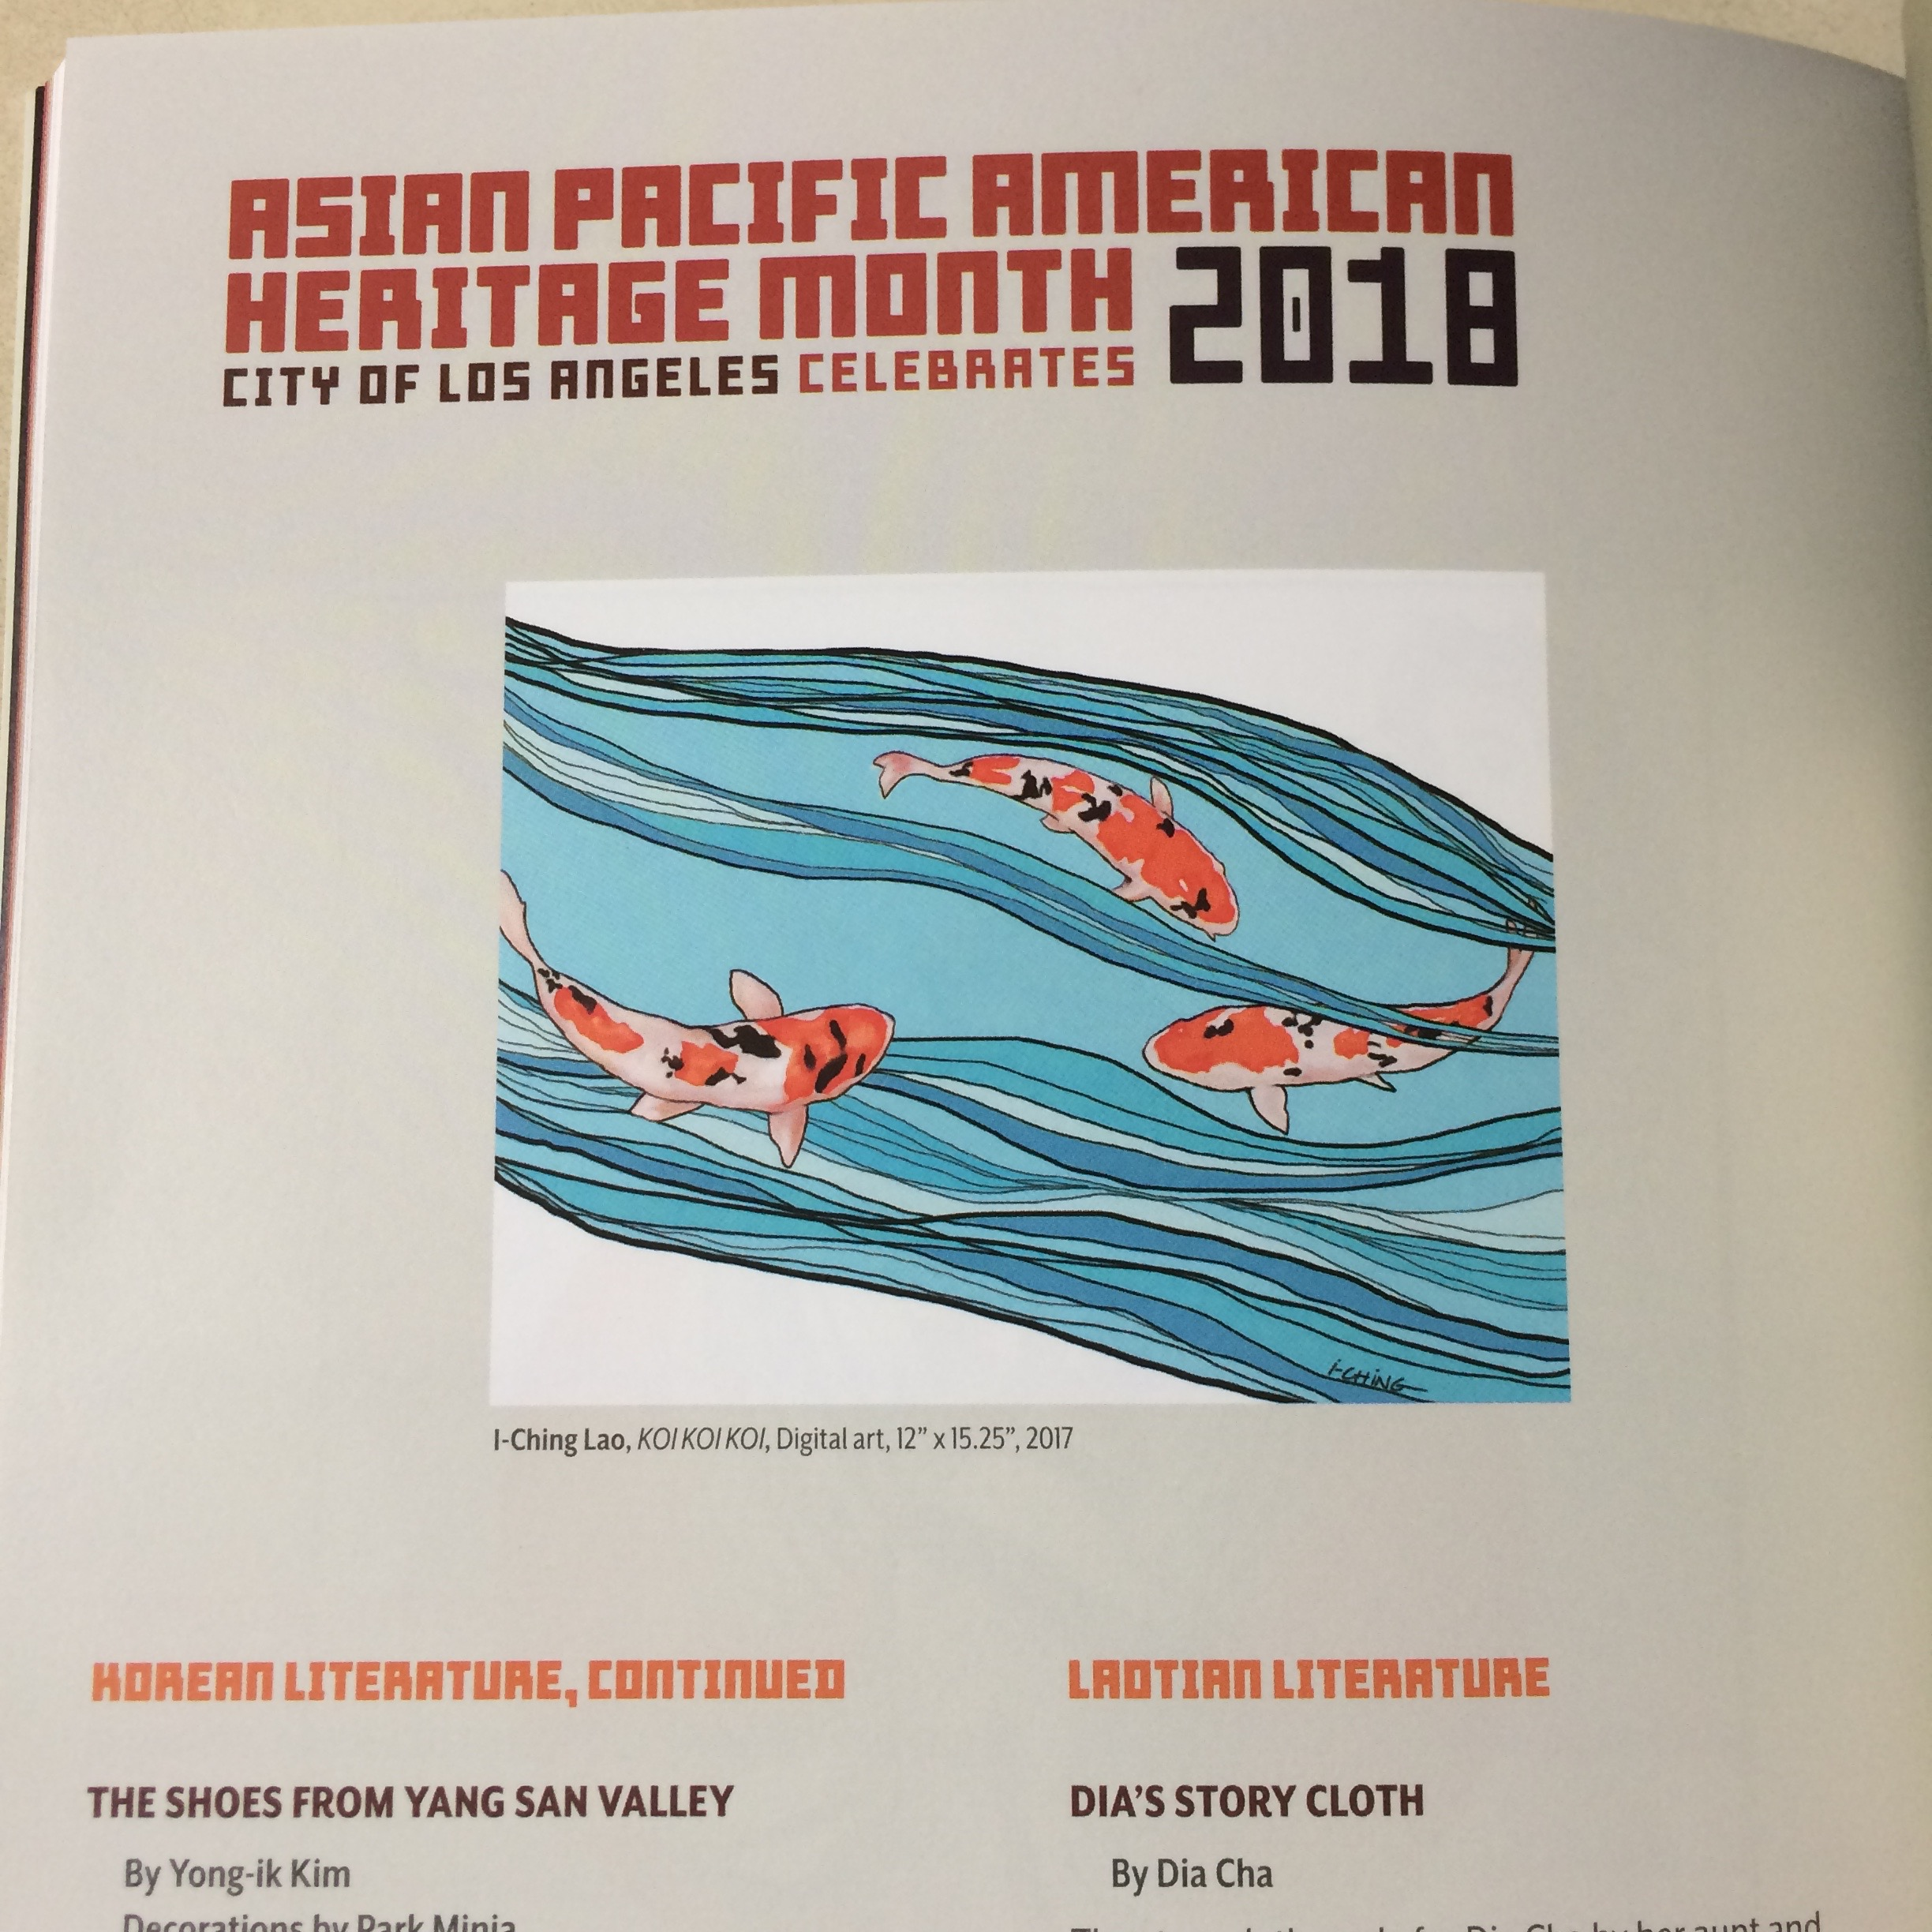 Asian Pacific American Heritage Month Cultural Guide 2018